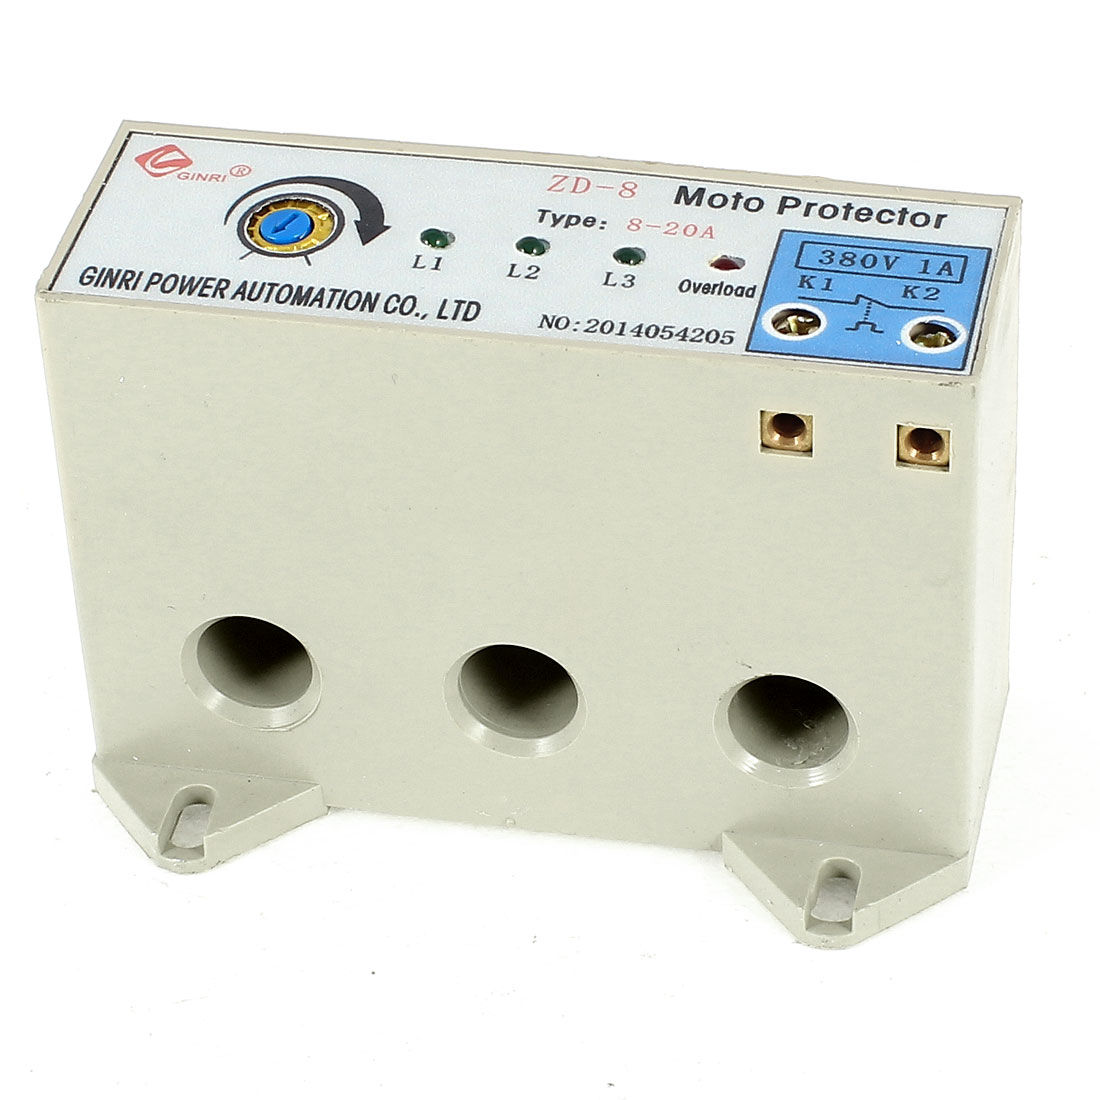 ZD-8/8-20A 3 Phase 8-20 Ampere Adjustable Current Breaker Motor Circuit Protector Non Power